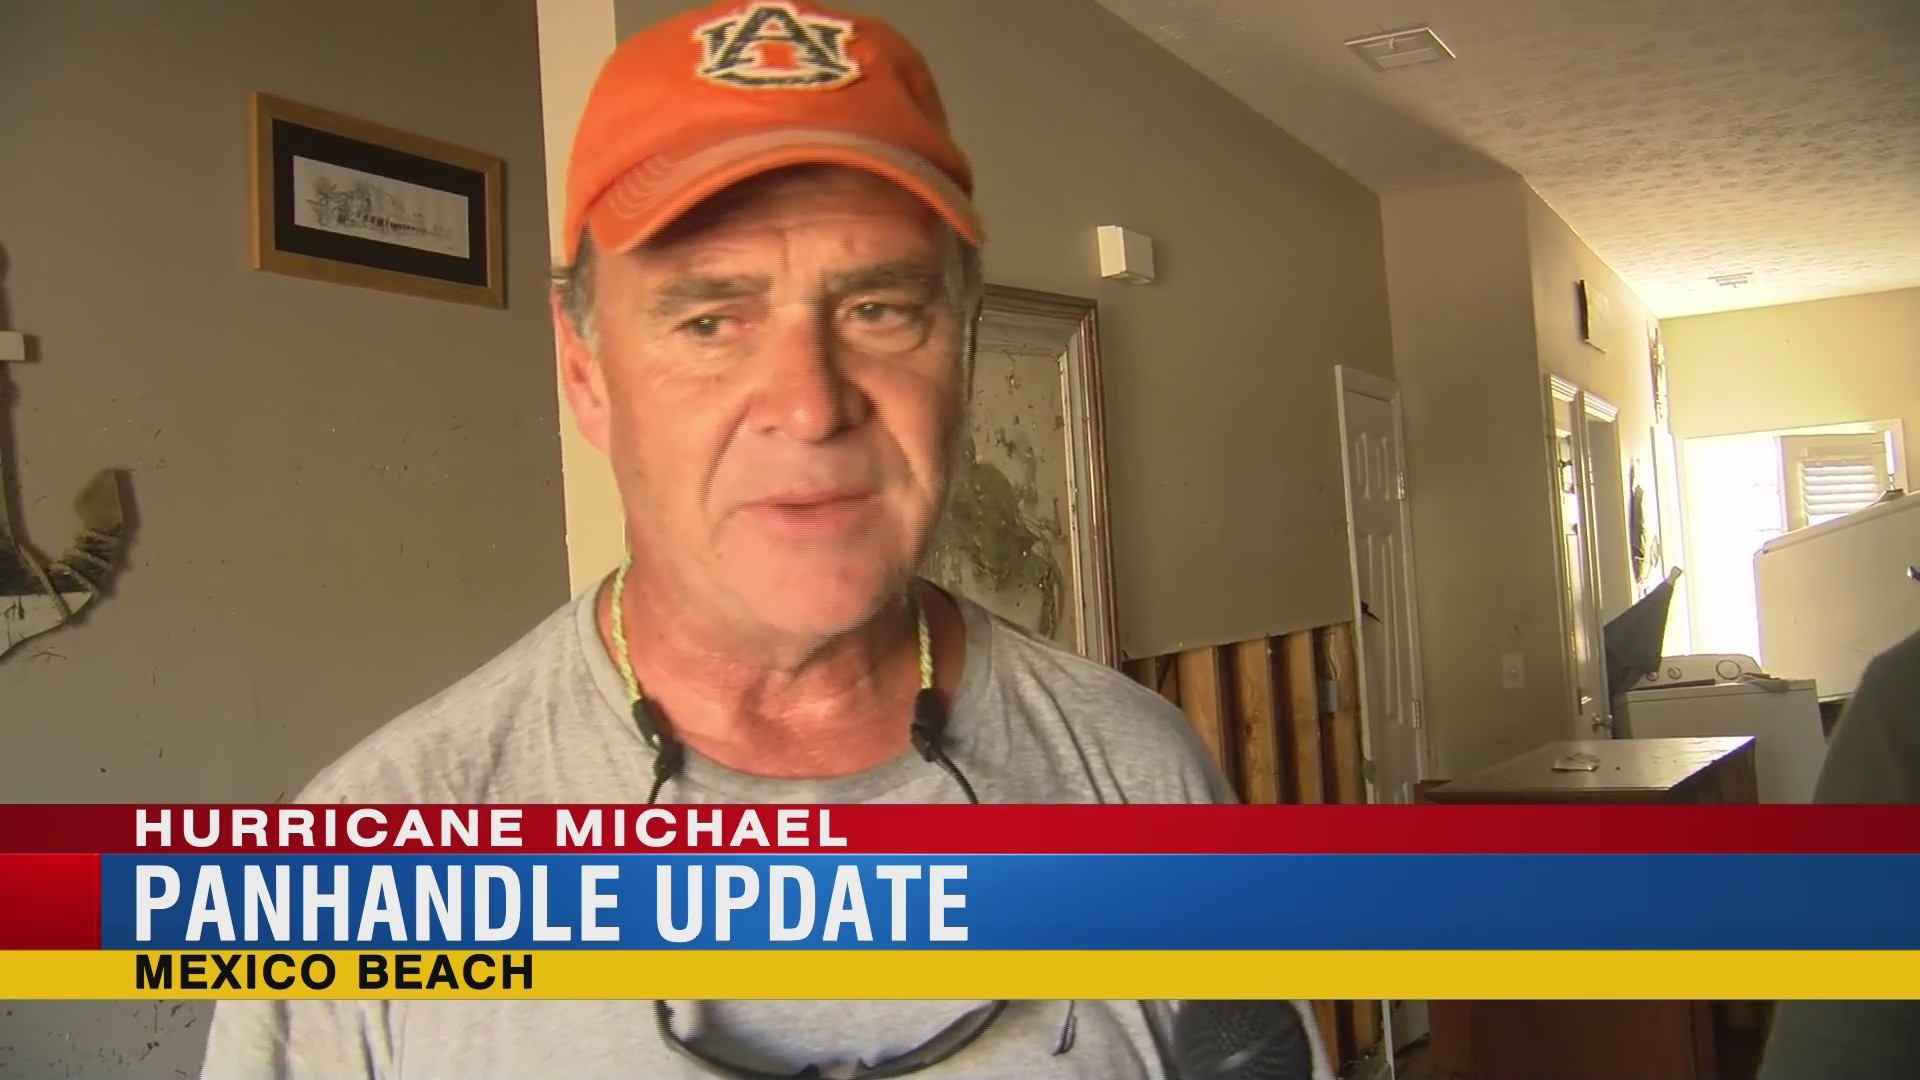 Alabama man in Mexico Beach talks about trying to get in touch with his family after Hurricane Michael